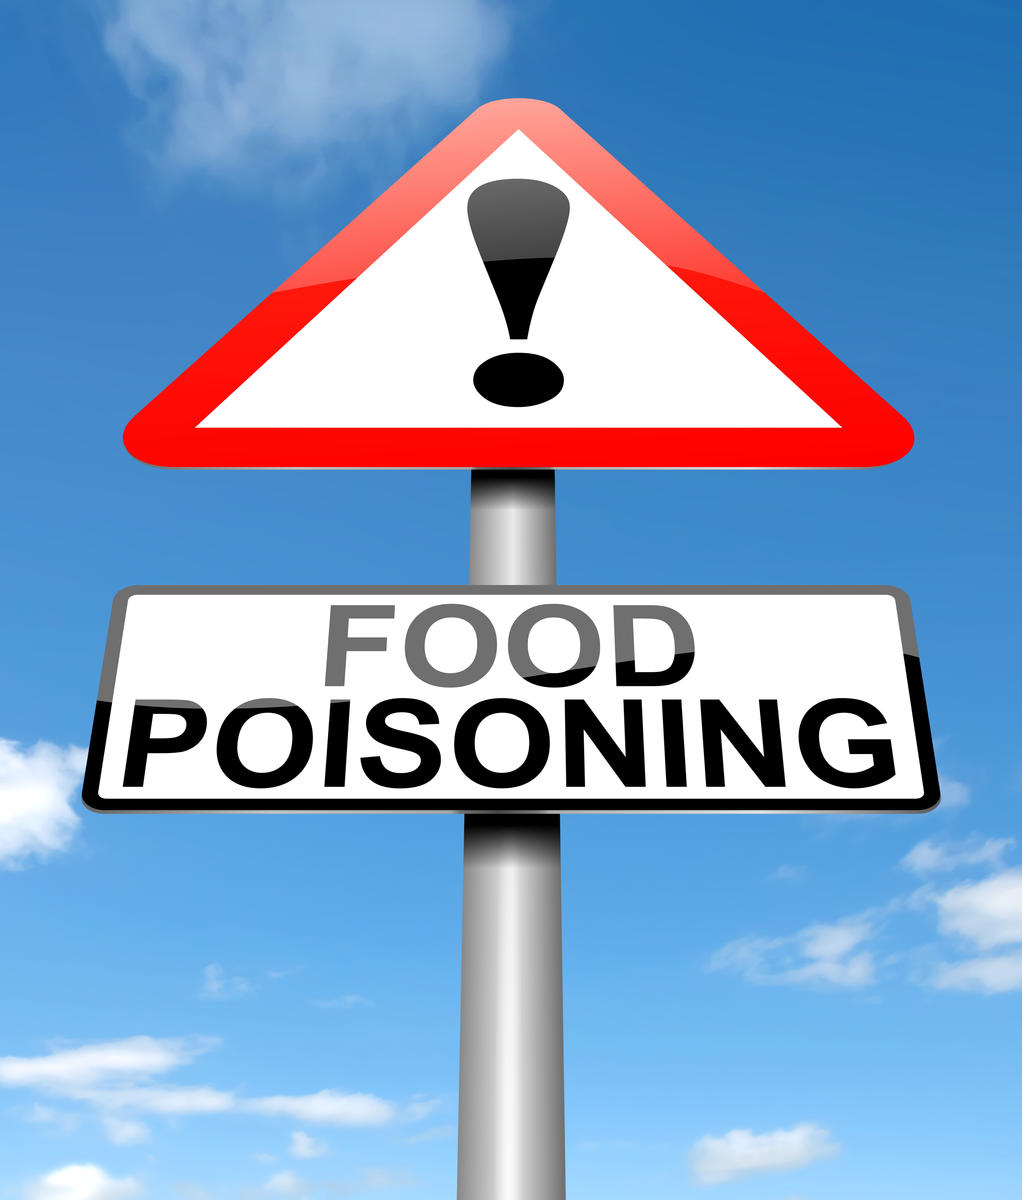 food poisoning sign